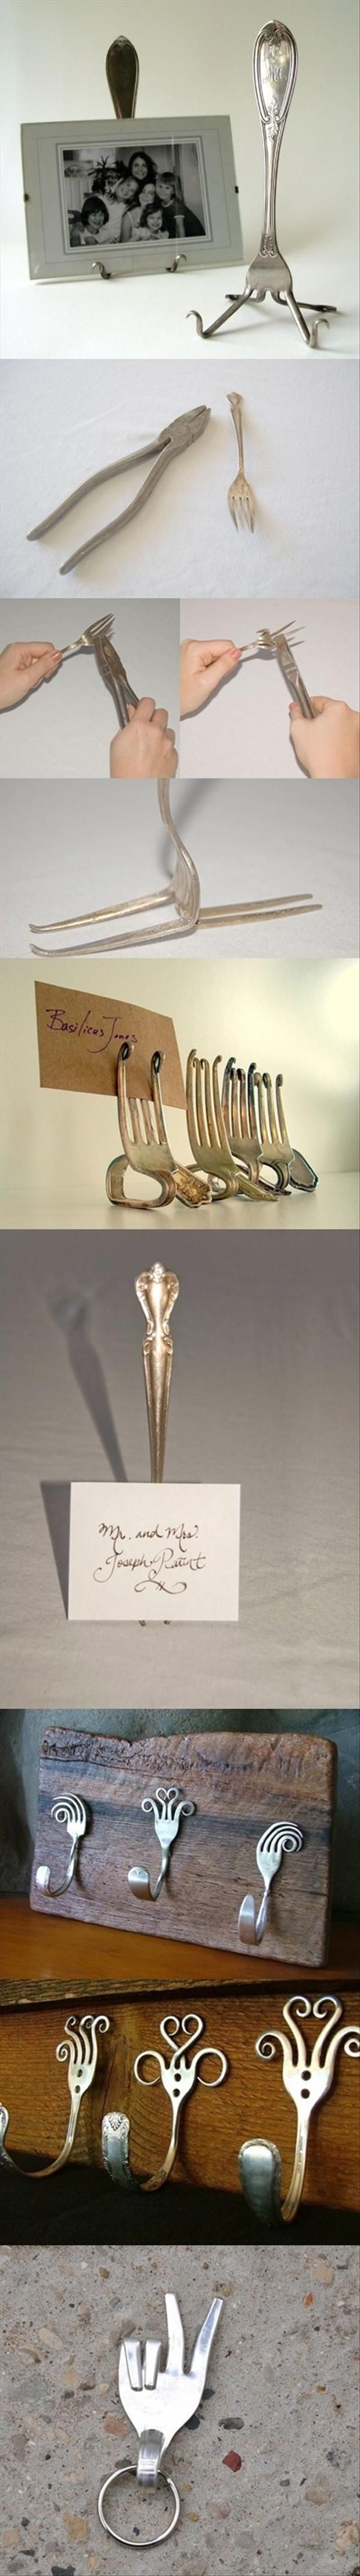 Fun Do It Yourself Craft Ideas – 45 Pics  (they make it look so easy to bend the fork and curl it...trust me, it KILLS your grip!  I've made flatware mobiles using forks and spoons!  Still, it's fun/pretty to use old flatware)